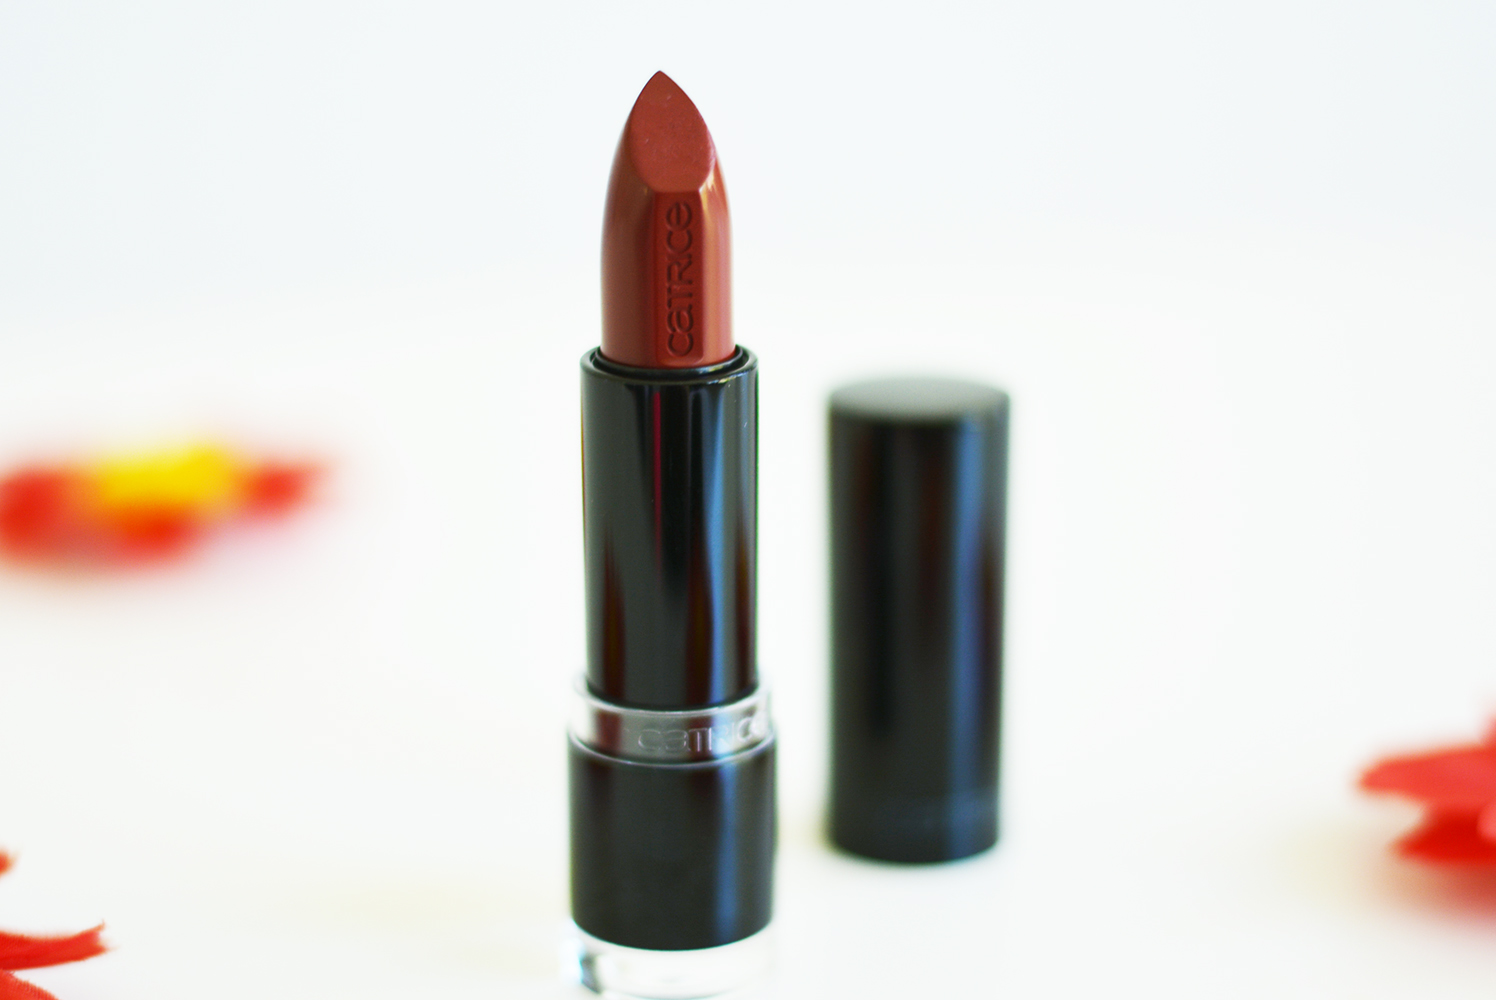 CATRICE Luminous Lips & Ultimate Colour Lipstick